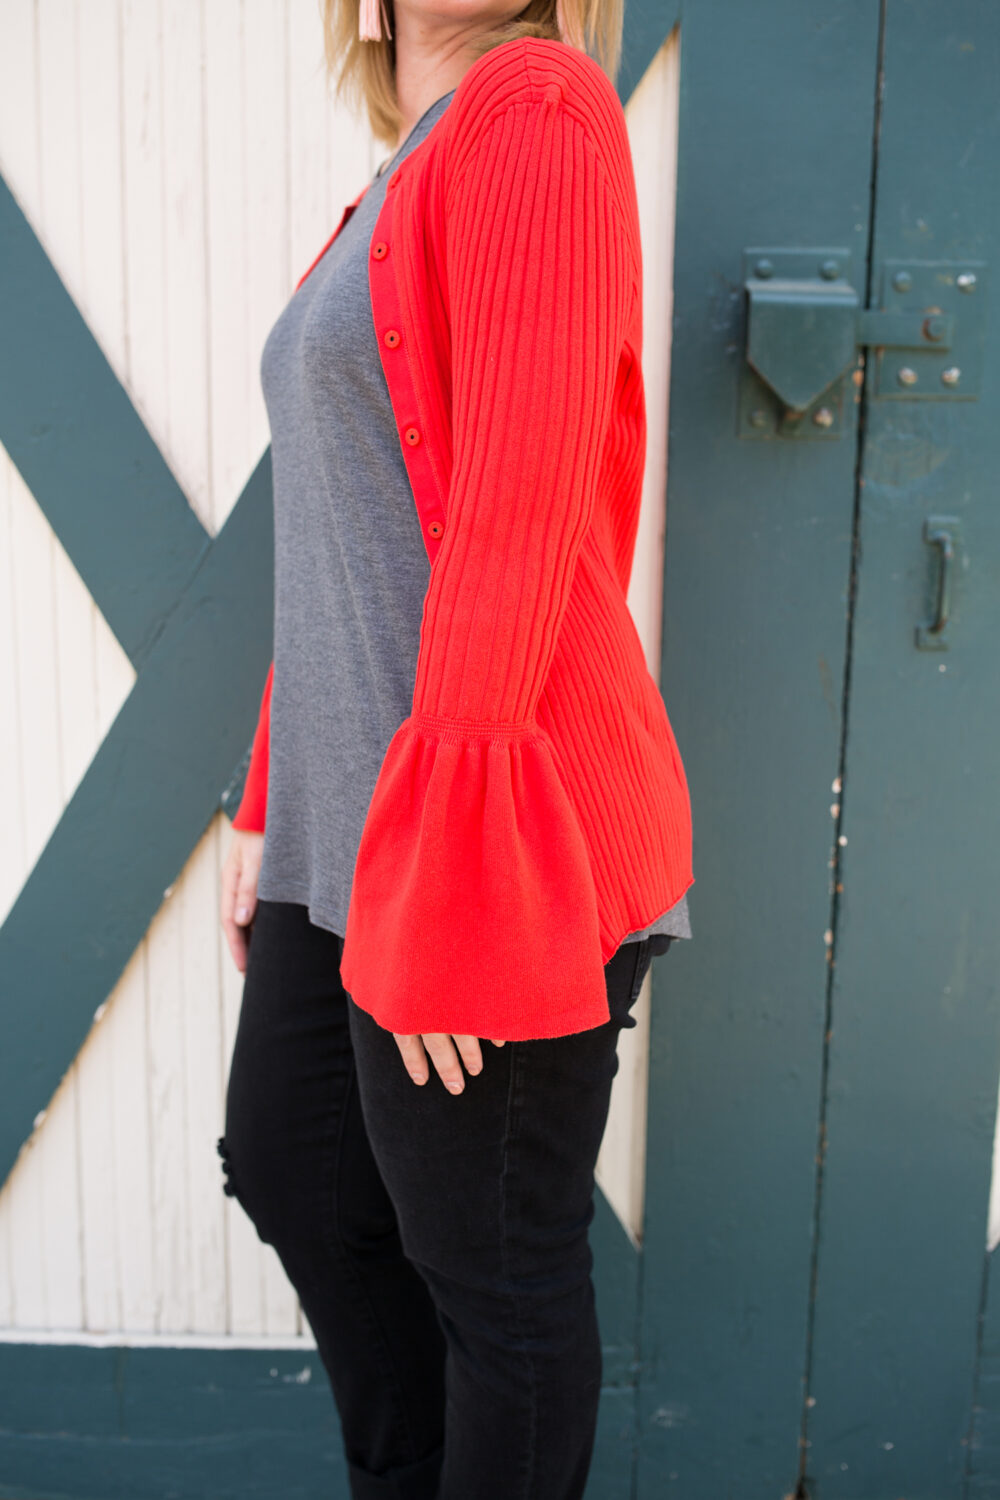 Spring Outfits Must Own Pieces: This red cardigan is super flattering on a pear shaped body!